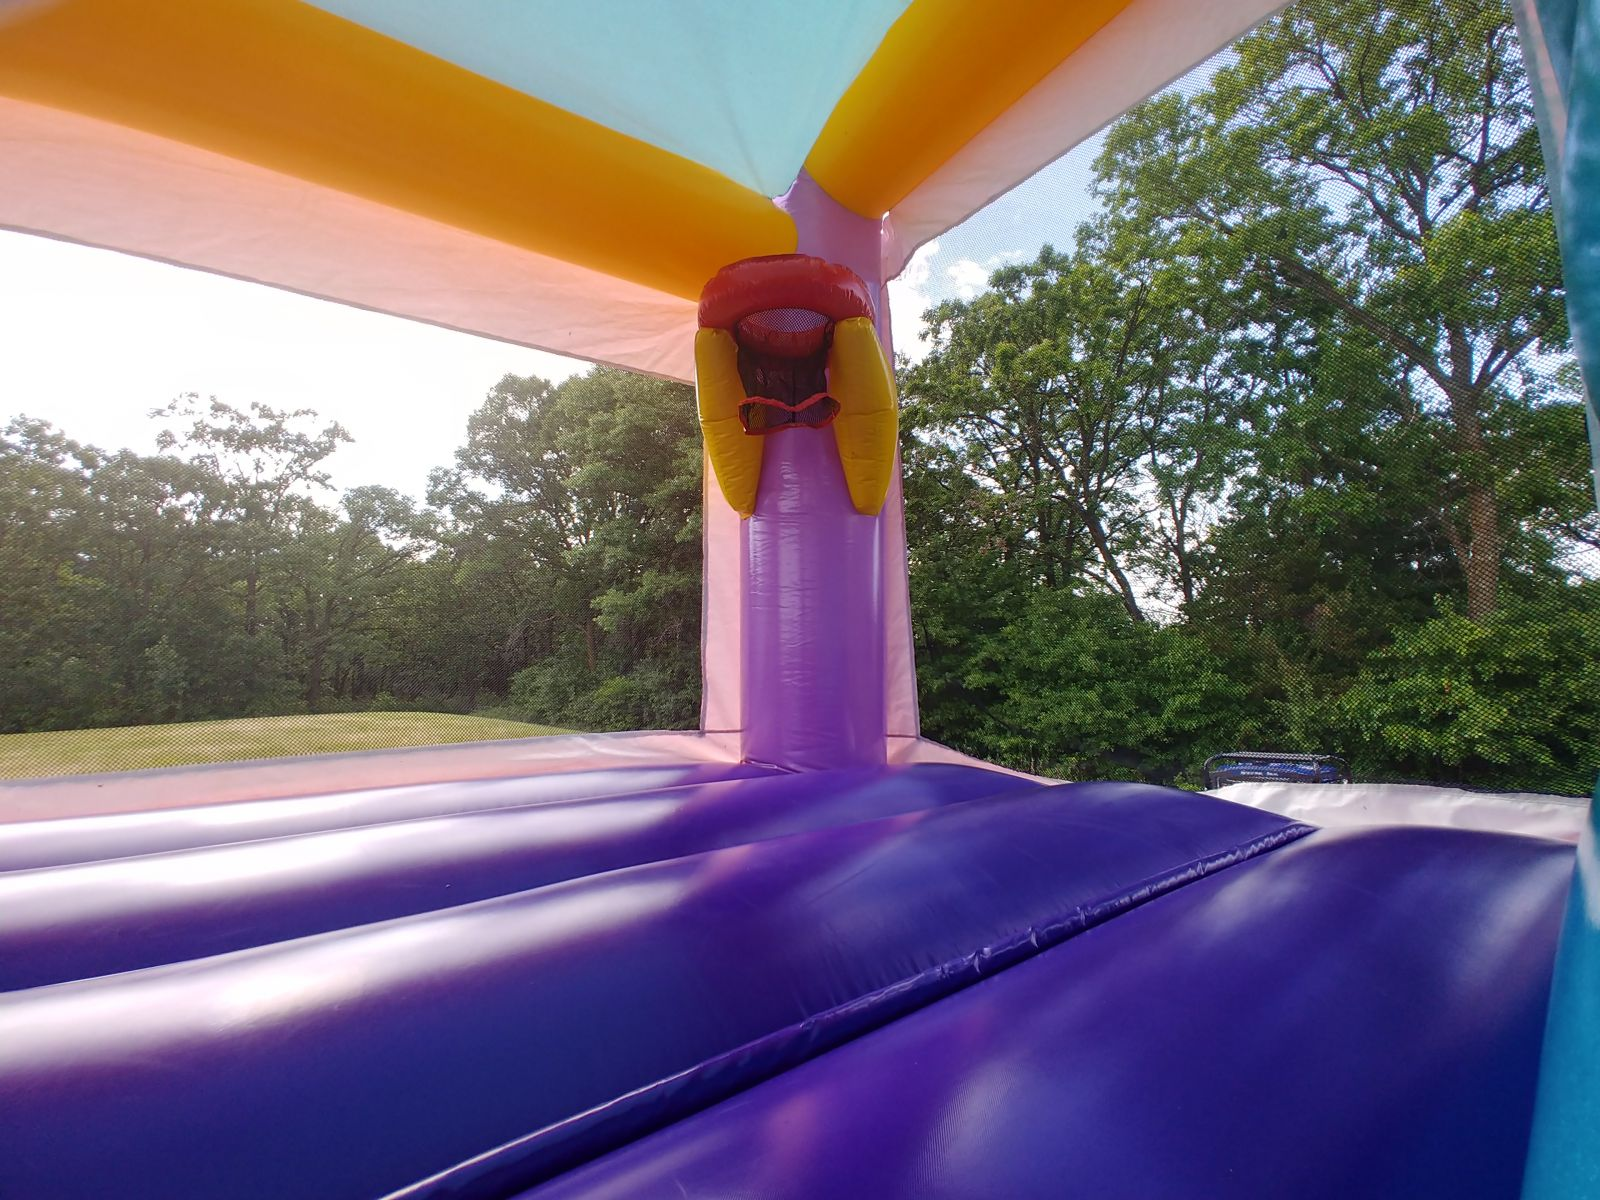 Bounce house with basketball hoop inside